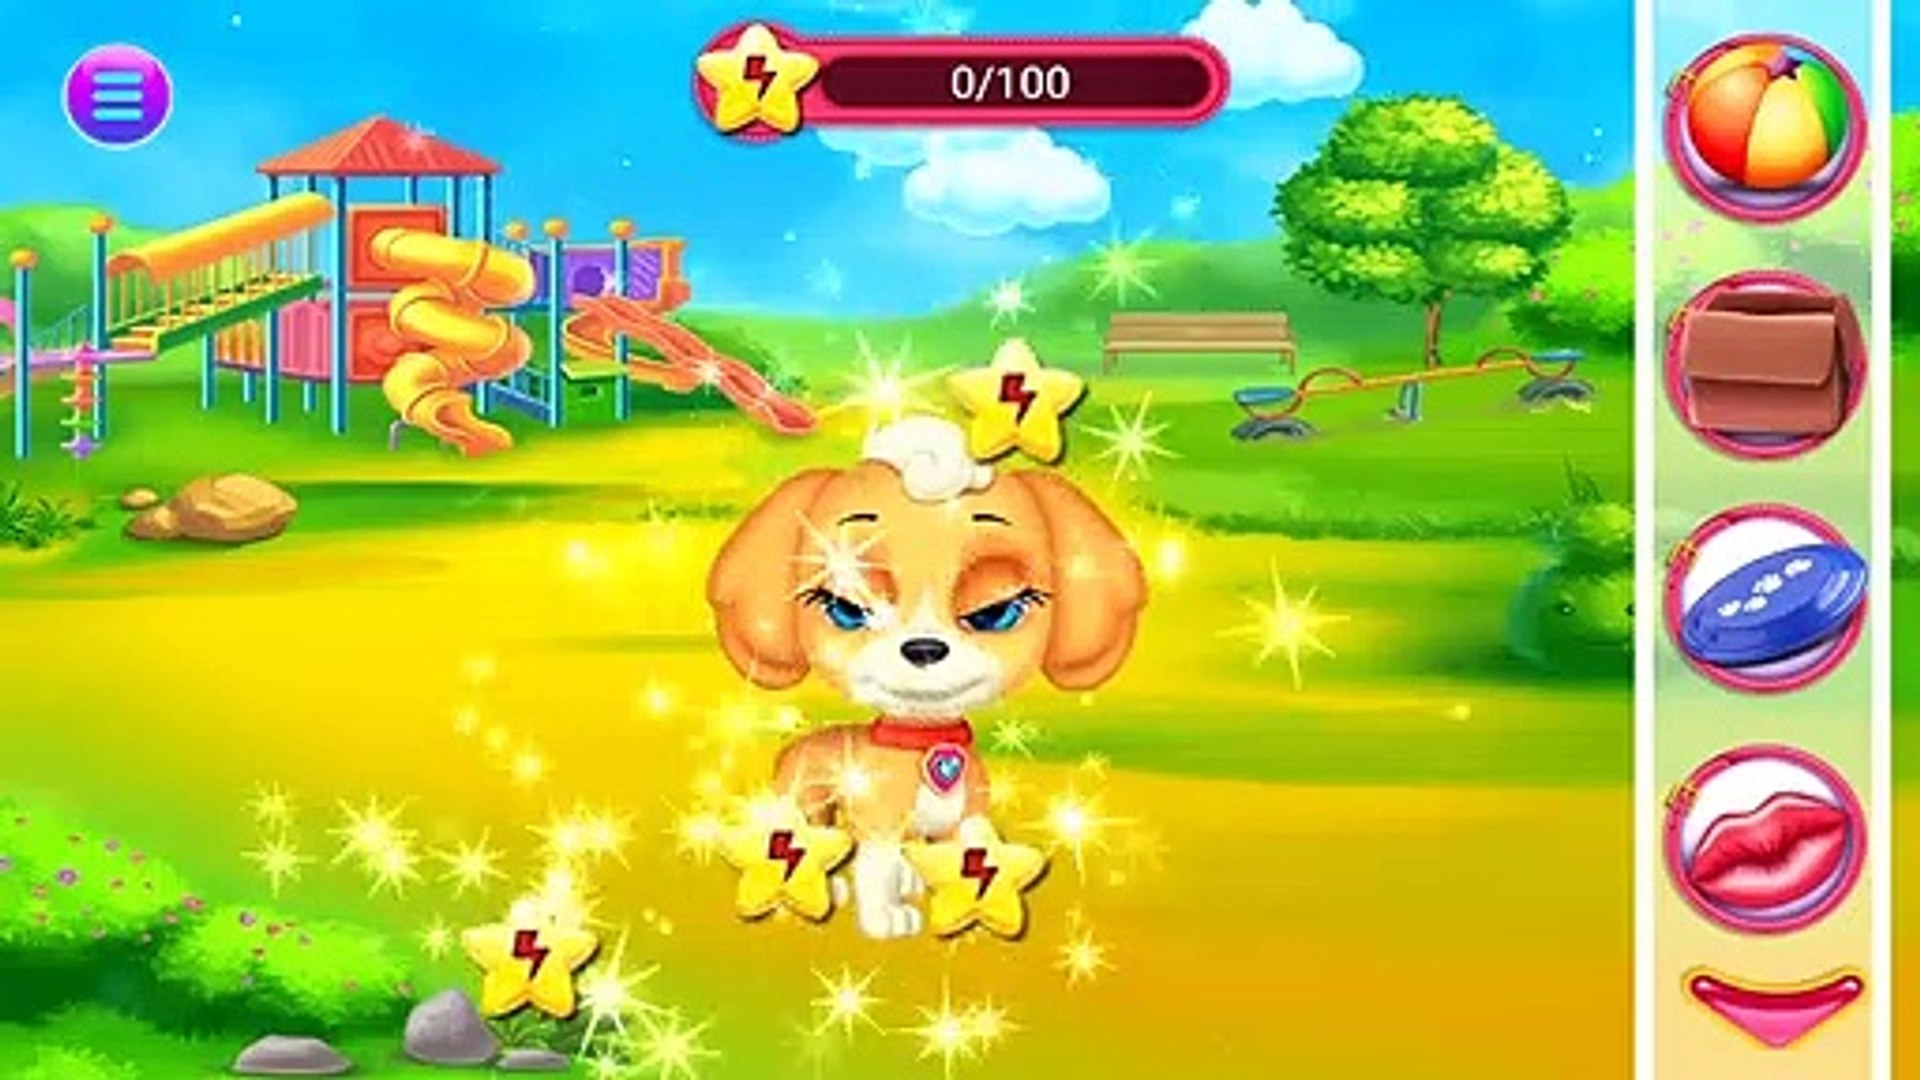 Play My Cute Little Pet Puppy Pet Care Kids Game - Let's Take Care Of Cute Puppy Mini Games For